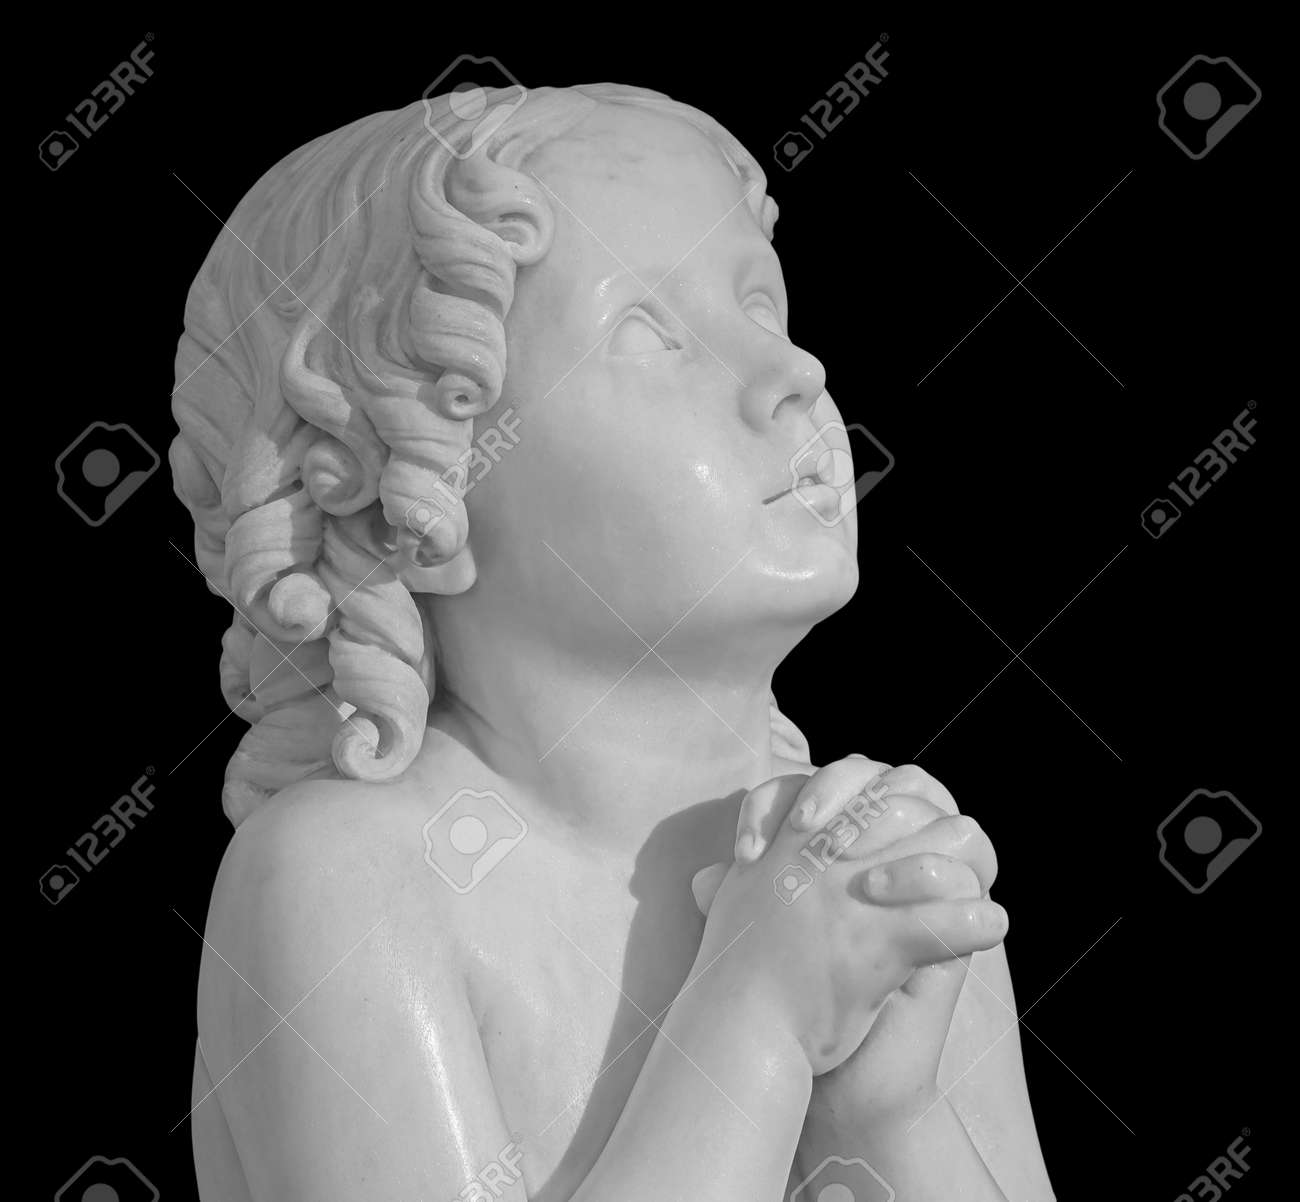 Beautiful marble statue of an pray infant angel isolated on black - 169669220